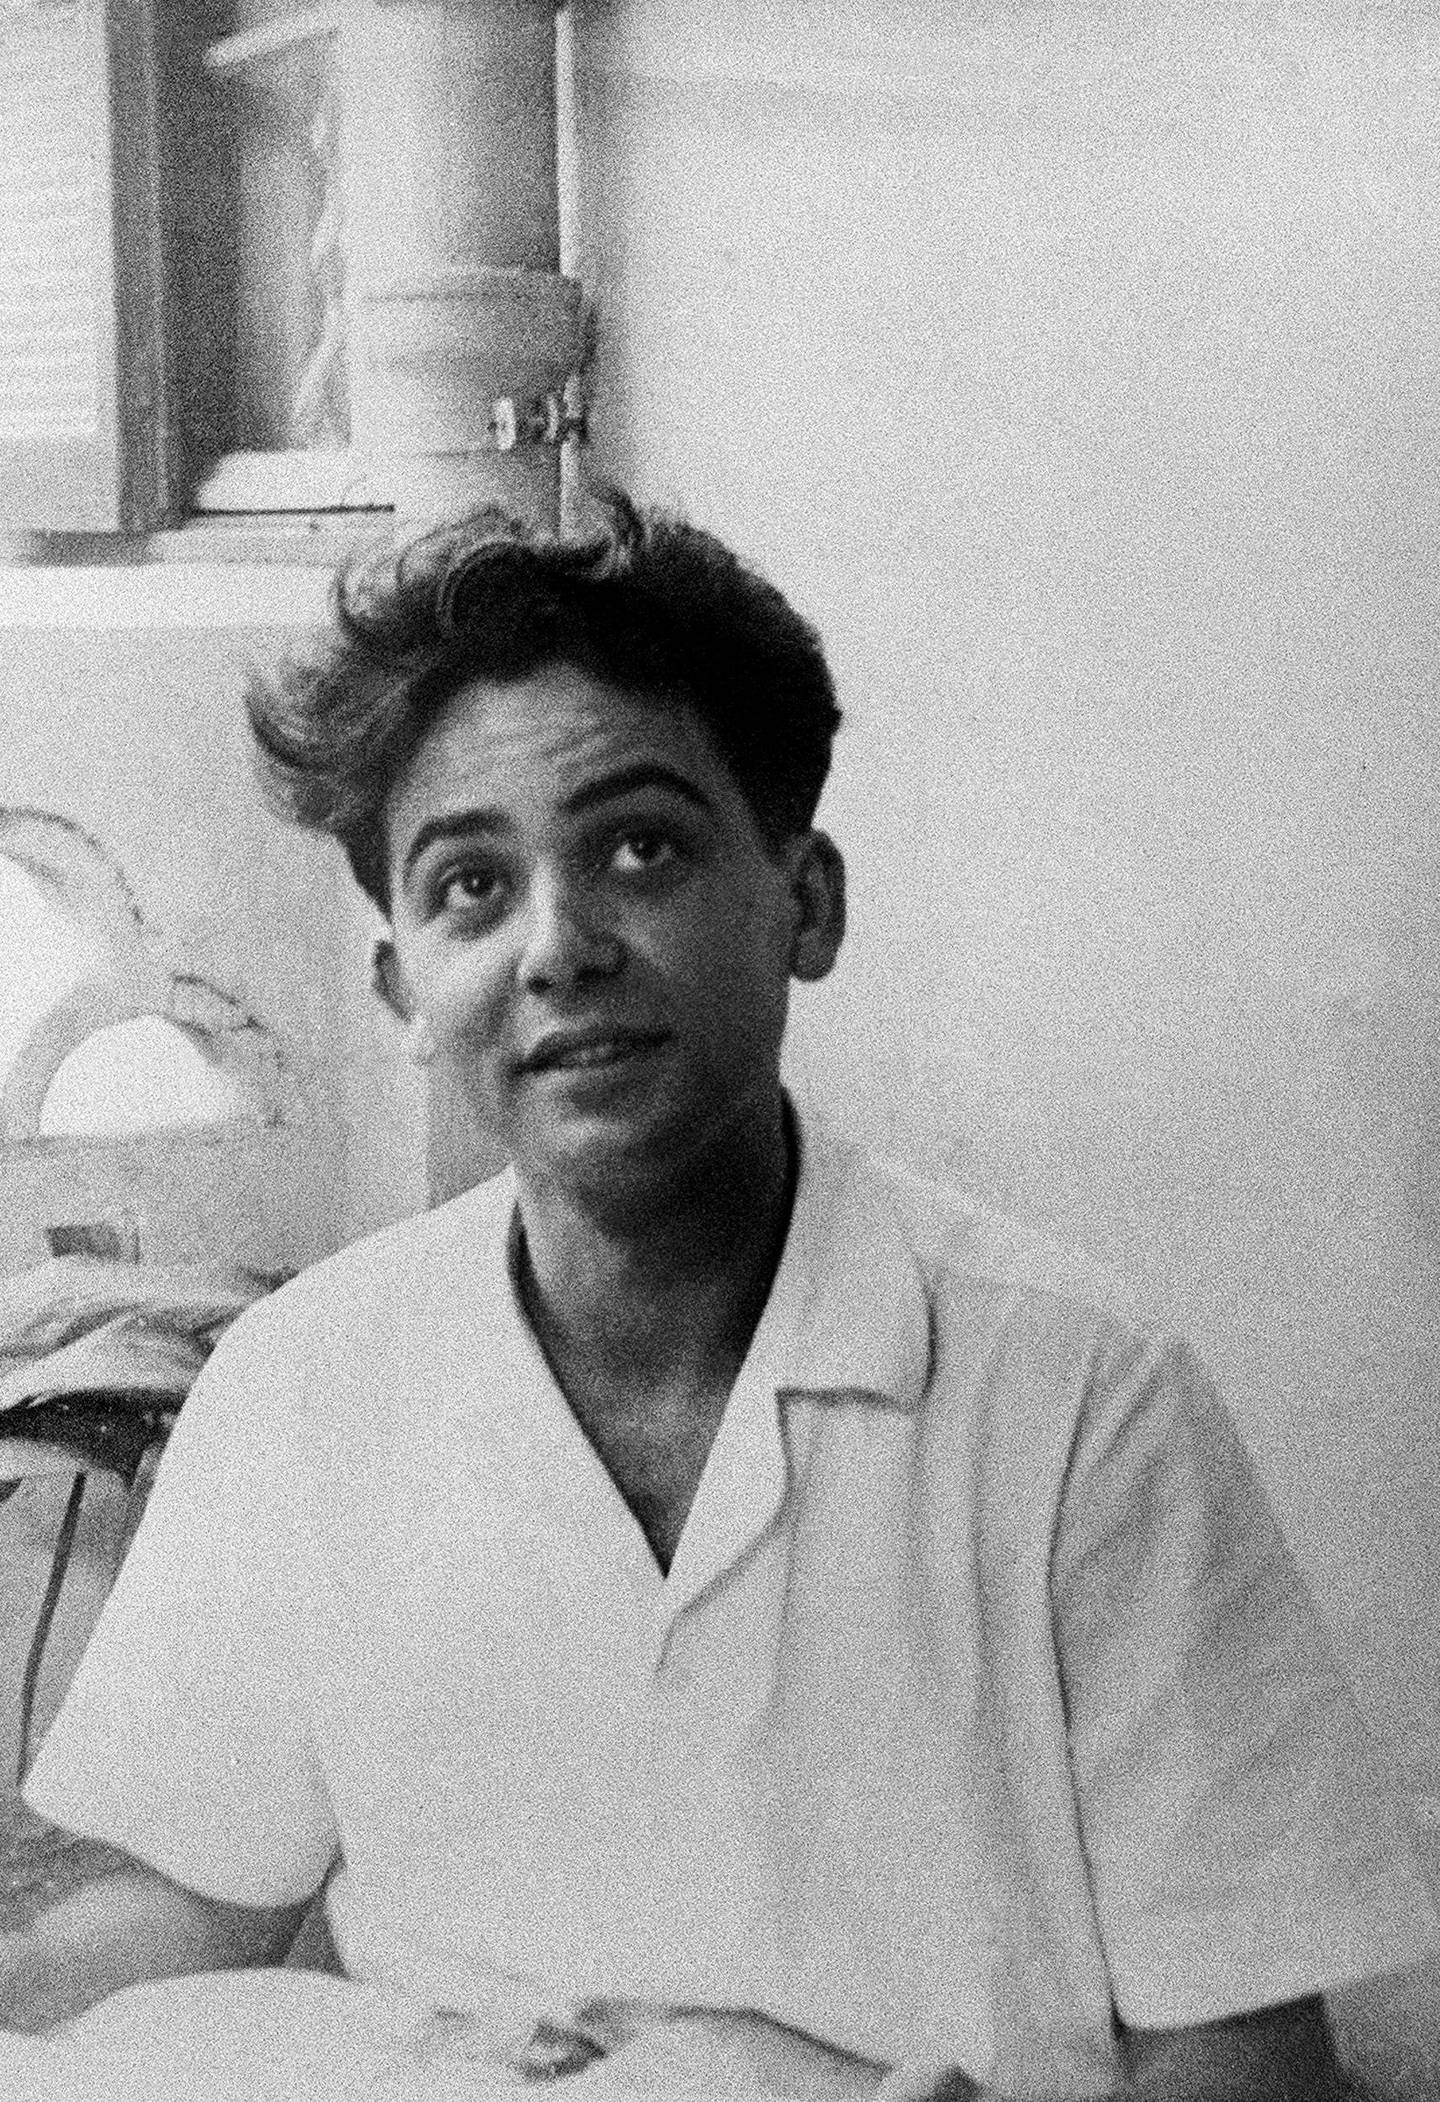 (FILES) This file photo taken circa 1950 shows Maurice Audin, a mathmatics assistant-teacher at the Alger university and member of the Algerian communist party, who went missing after being arrested on June 11, 1957, allegedly by French paratroopers under the command of General Jacques Massu during the Algerian War. - French President Emmanuel Macron will recognize the responsibility of the French state in the death of Maurice Audin, French mathematician and LREM member of Parliament Cedric Villani said on September 13, 2018. (Photo by STF / AFP)